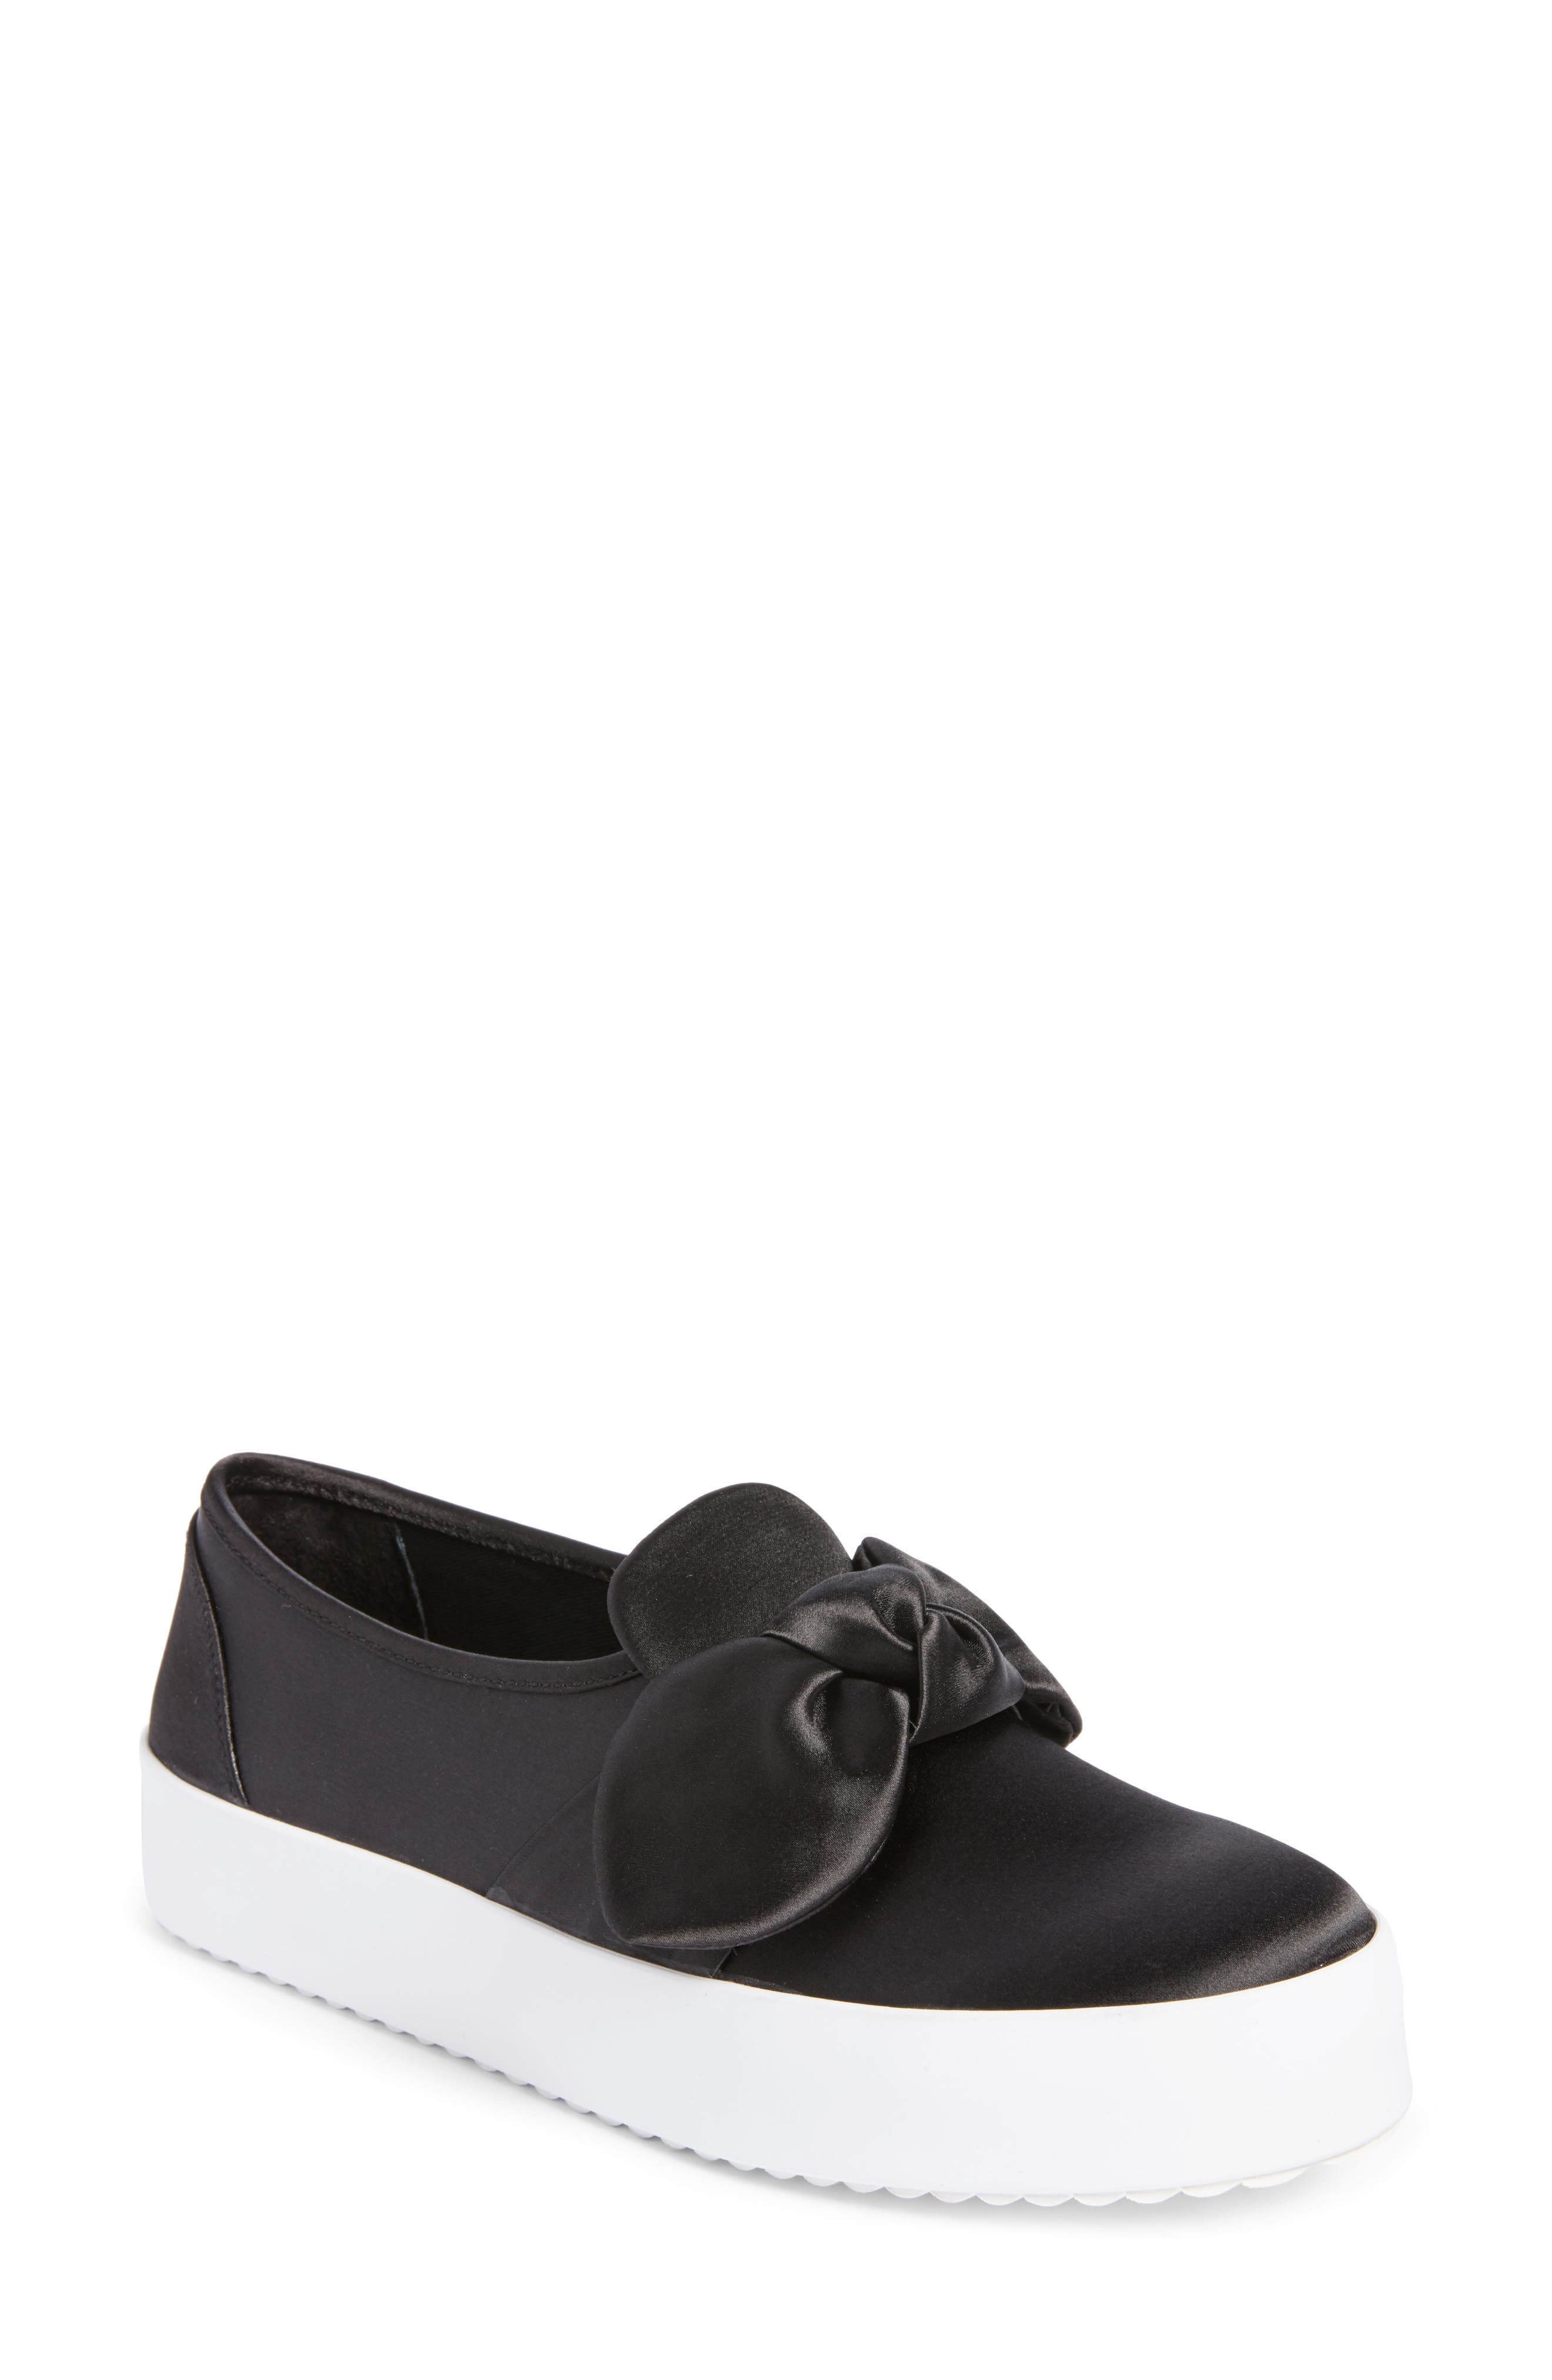 Stacey Bow Platform Sneaker,                         Main,                         color, 002